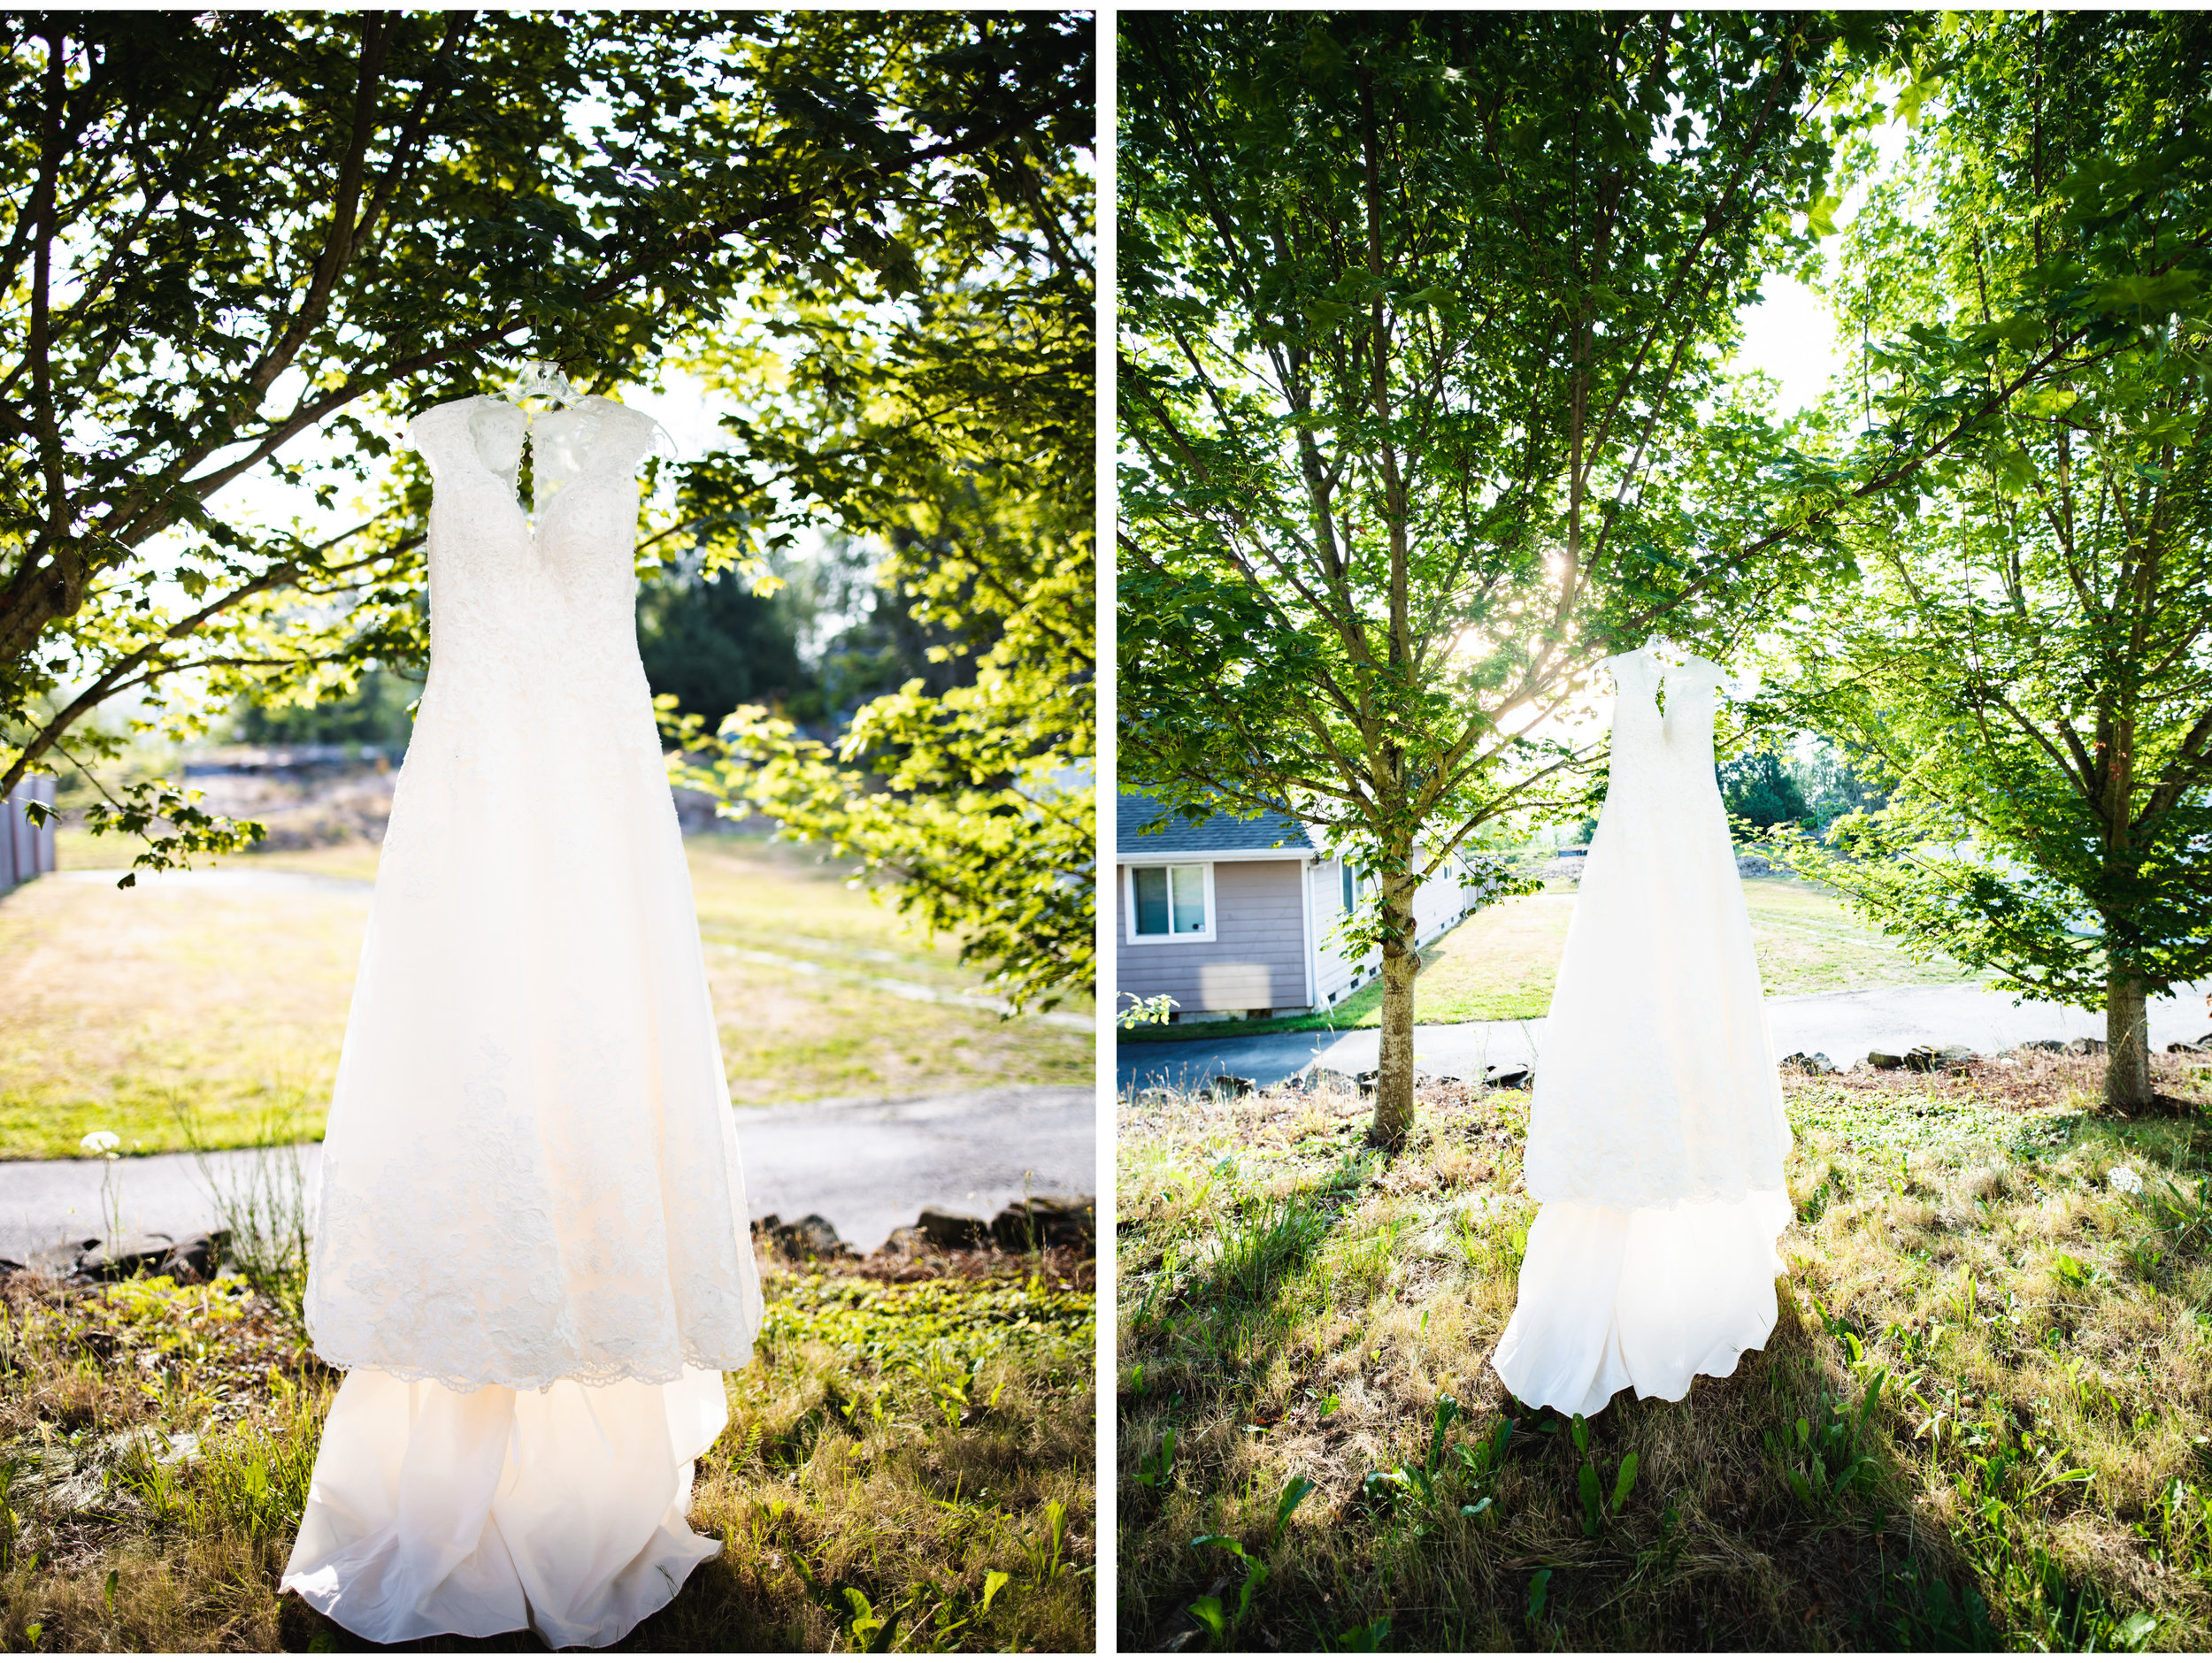 Wedding Dress on Tree.jpg